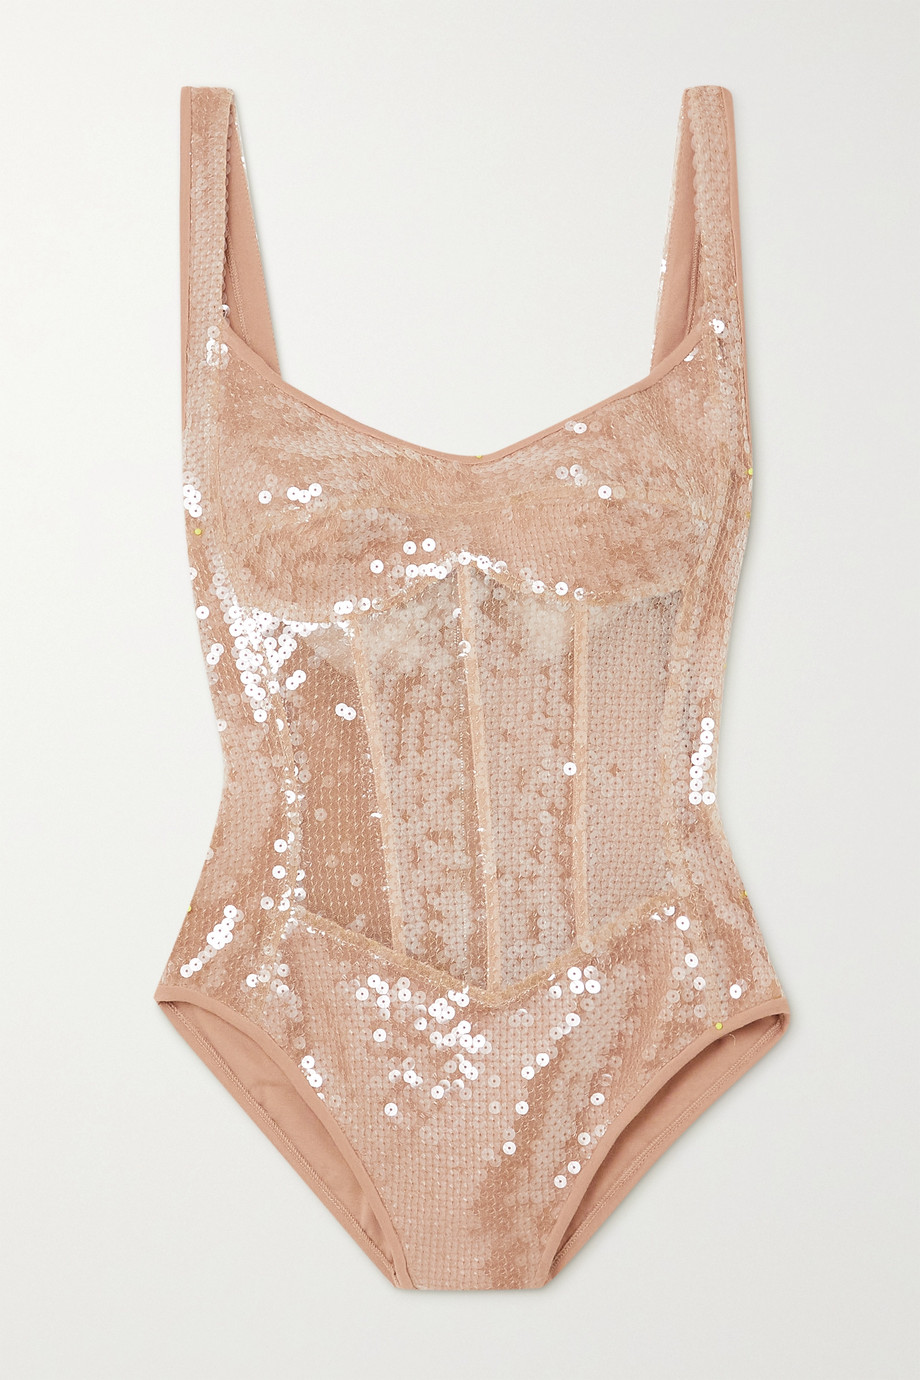 DAVID KOMA Sequined tulle and jersey bodysuit